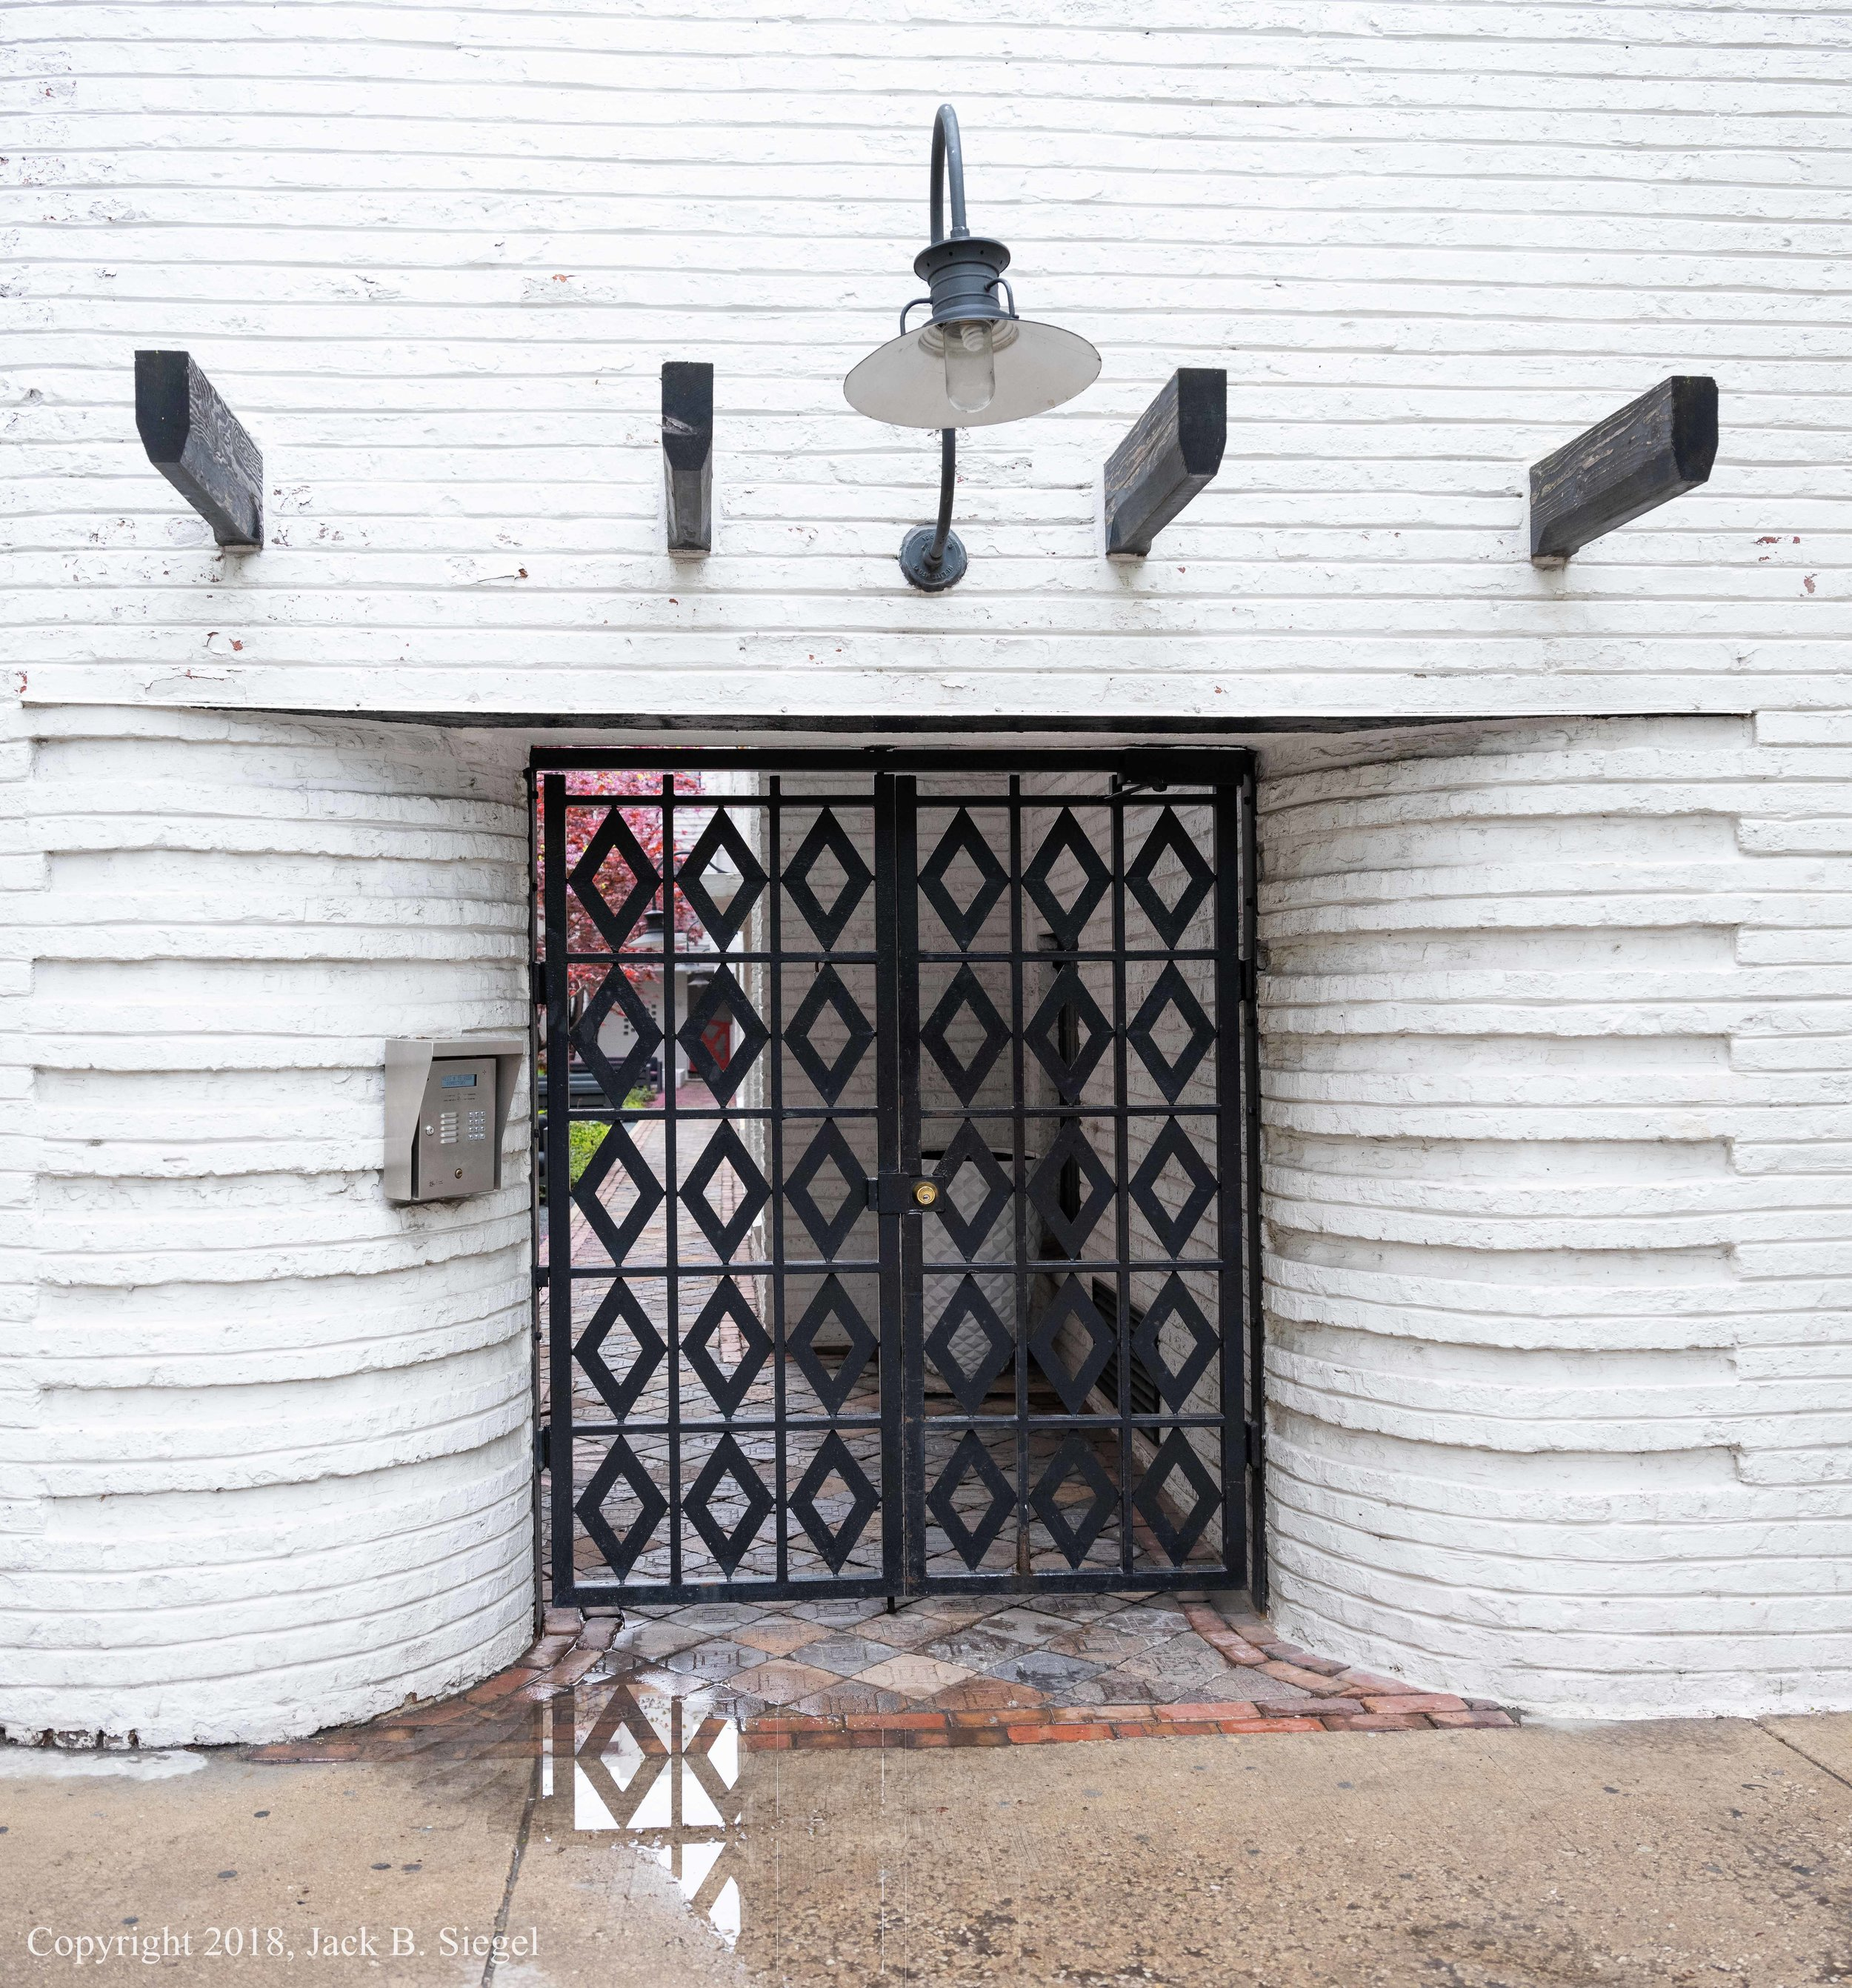 _DSF9109_Copyright_Entrance to Fisher Studios.jpg